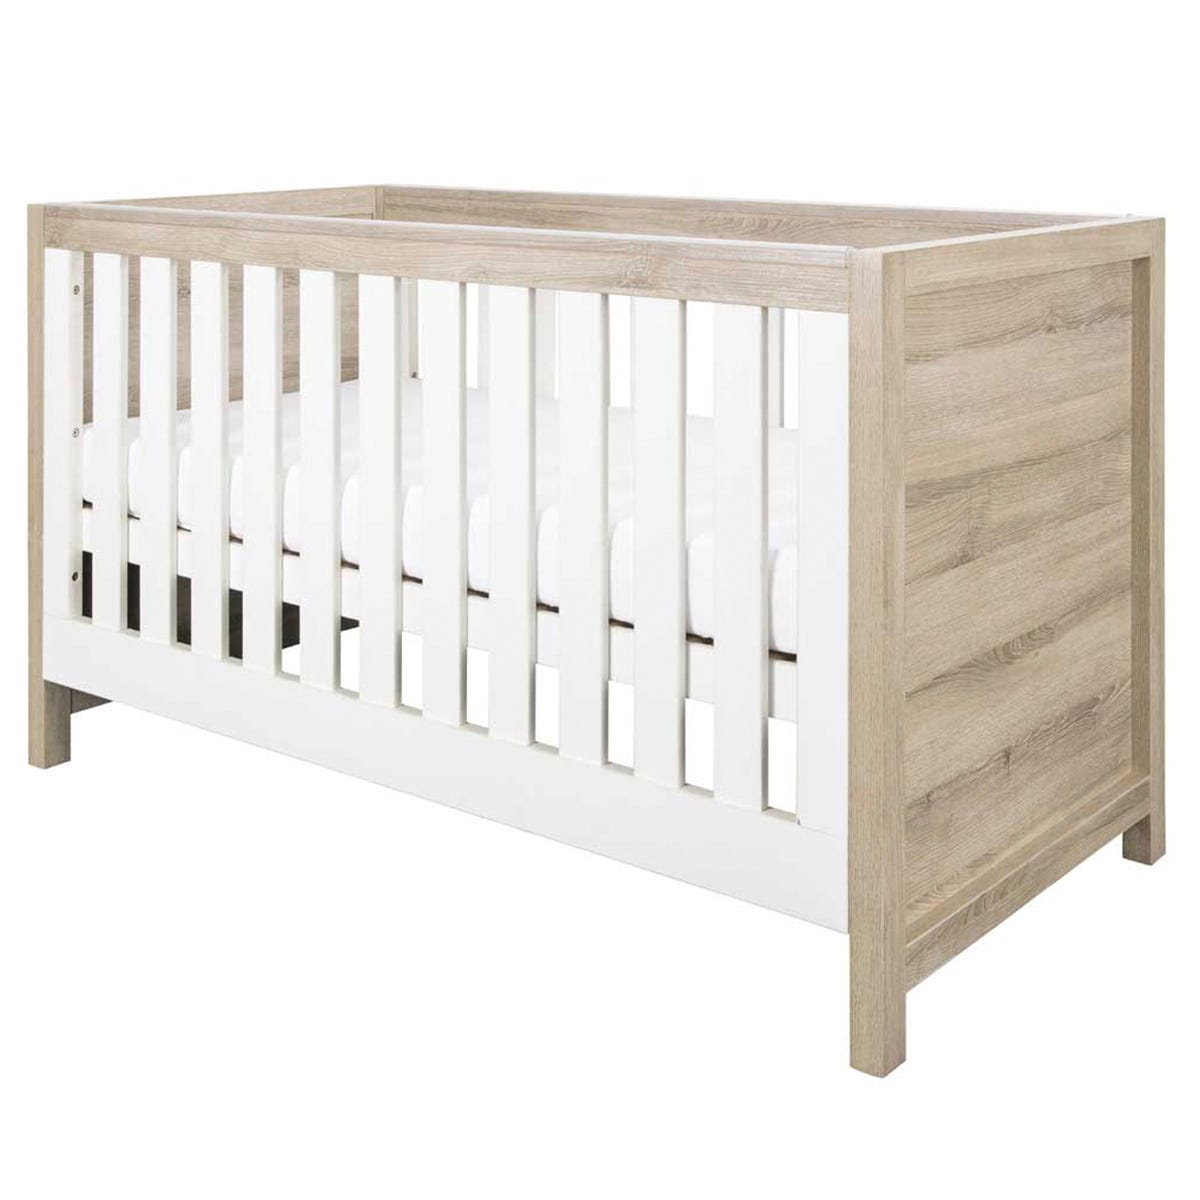 Modena Baby Cot Bed - White Oak